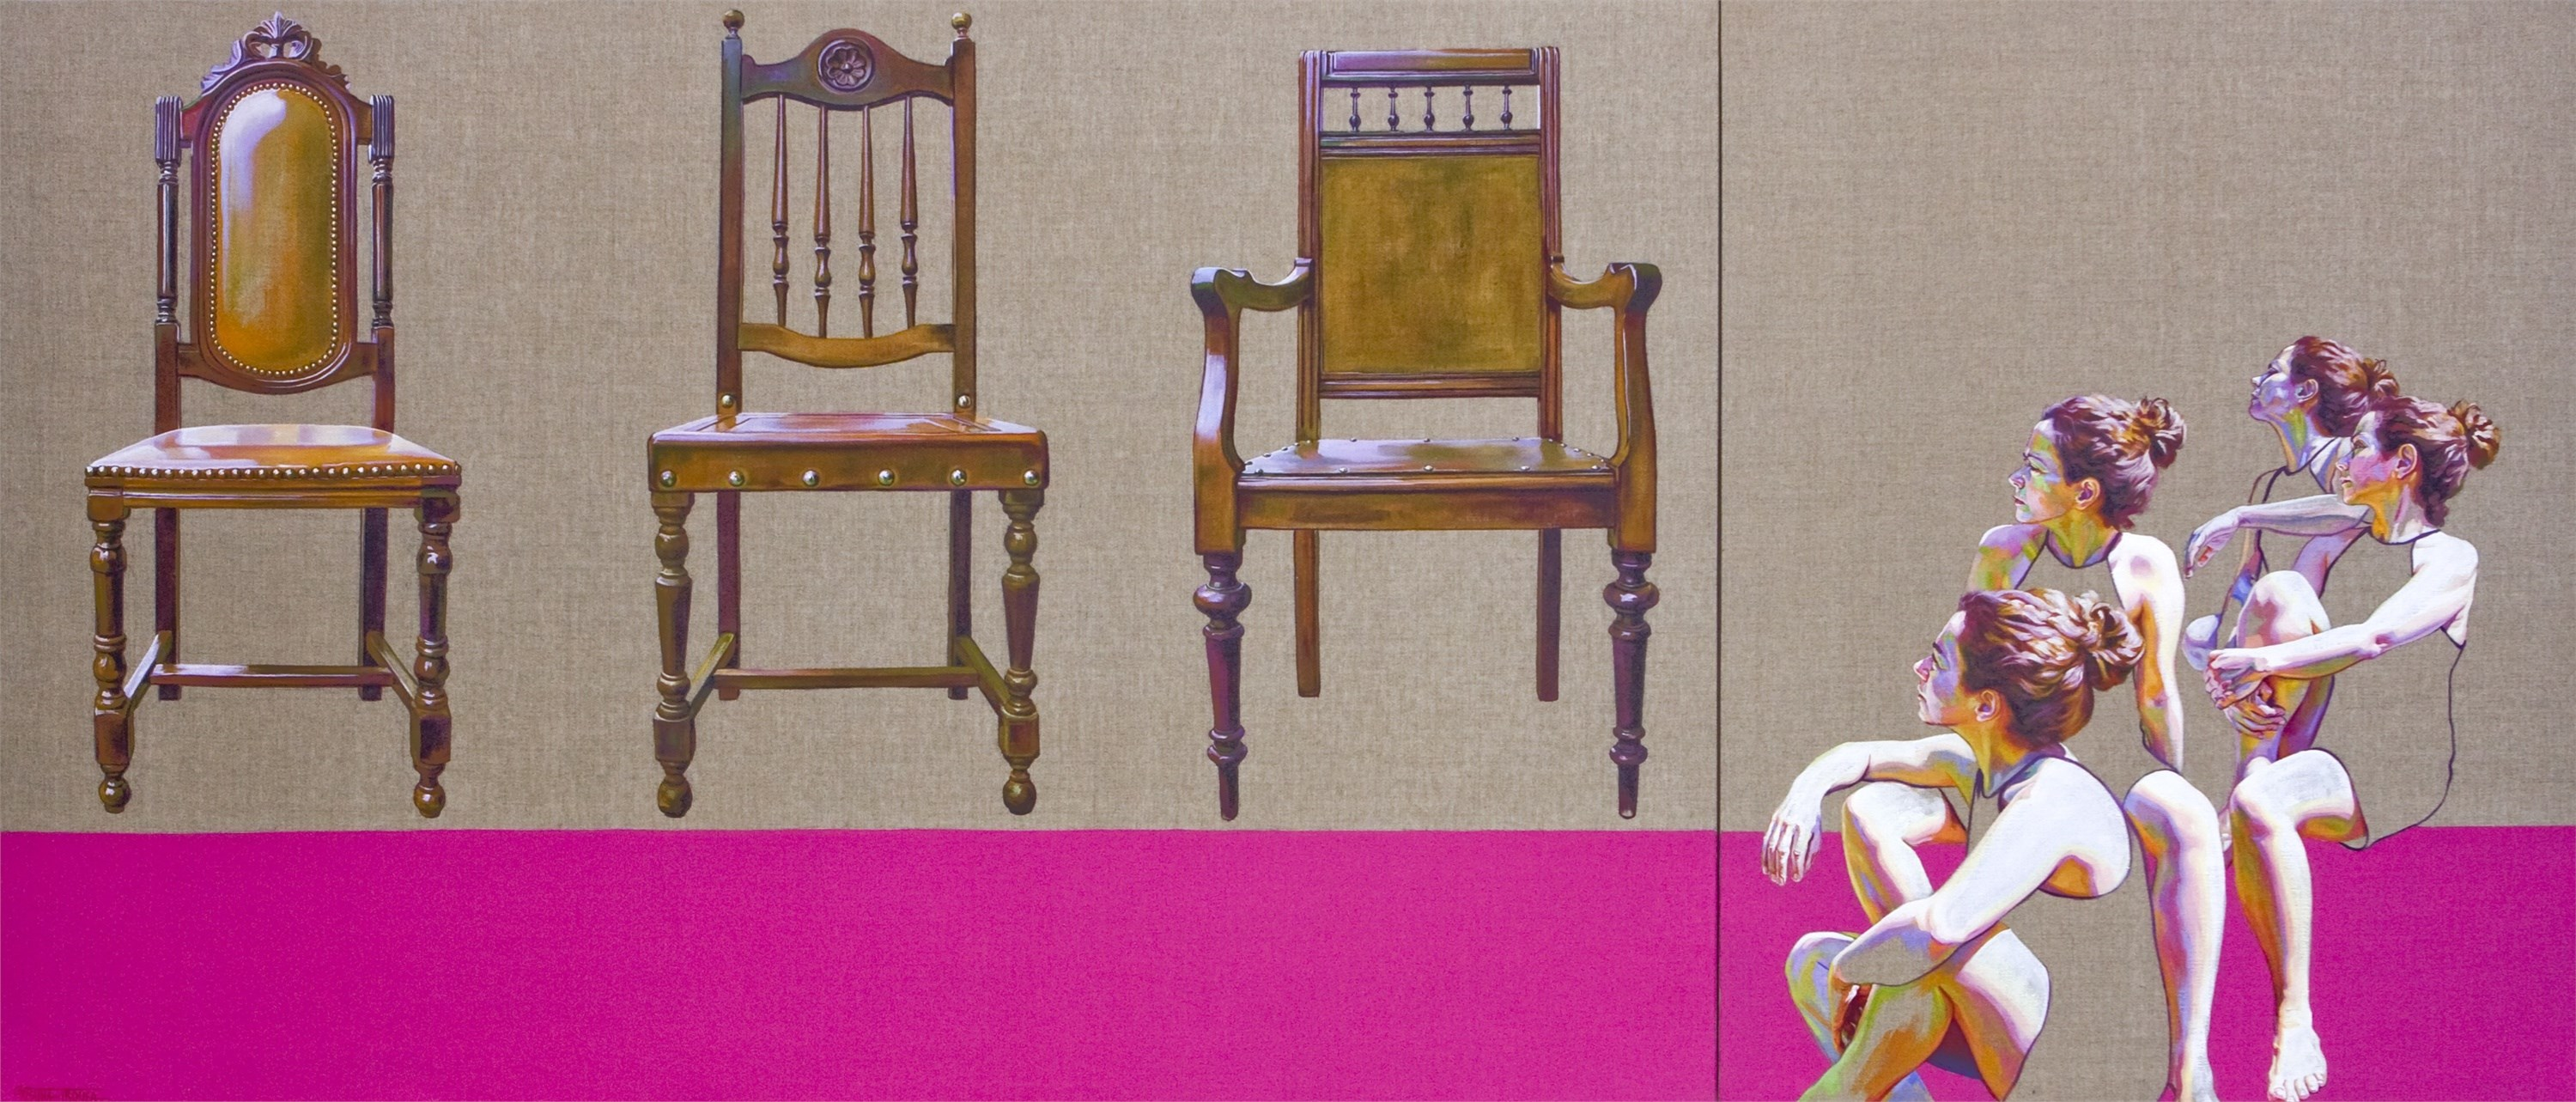 The chair, Pintura Acrílico Grande formato original por Cristina  Troufa